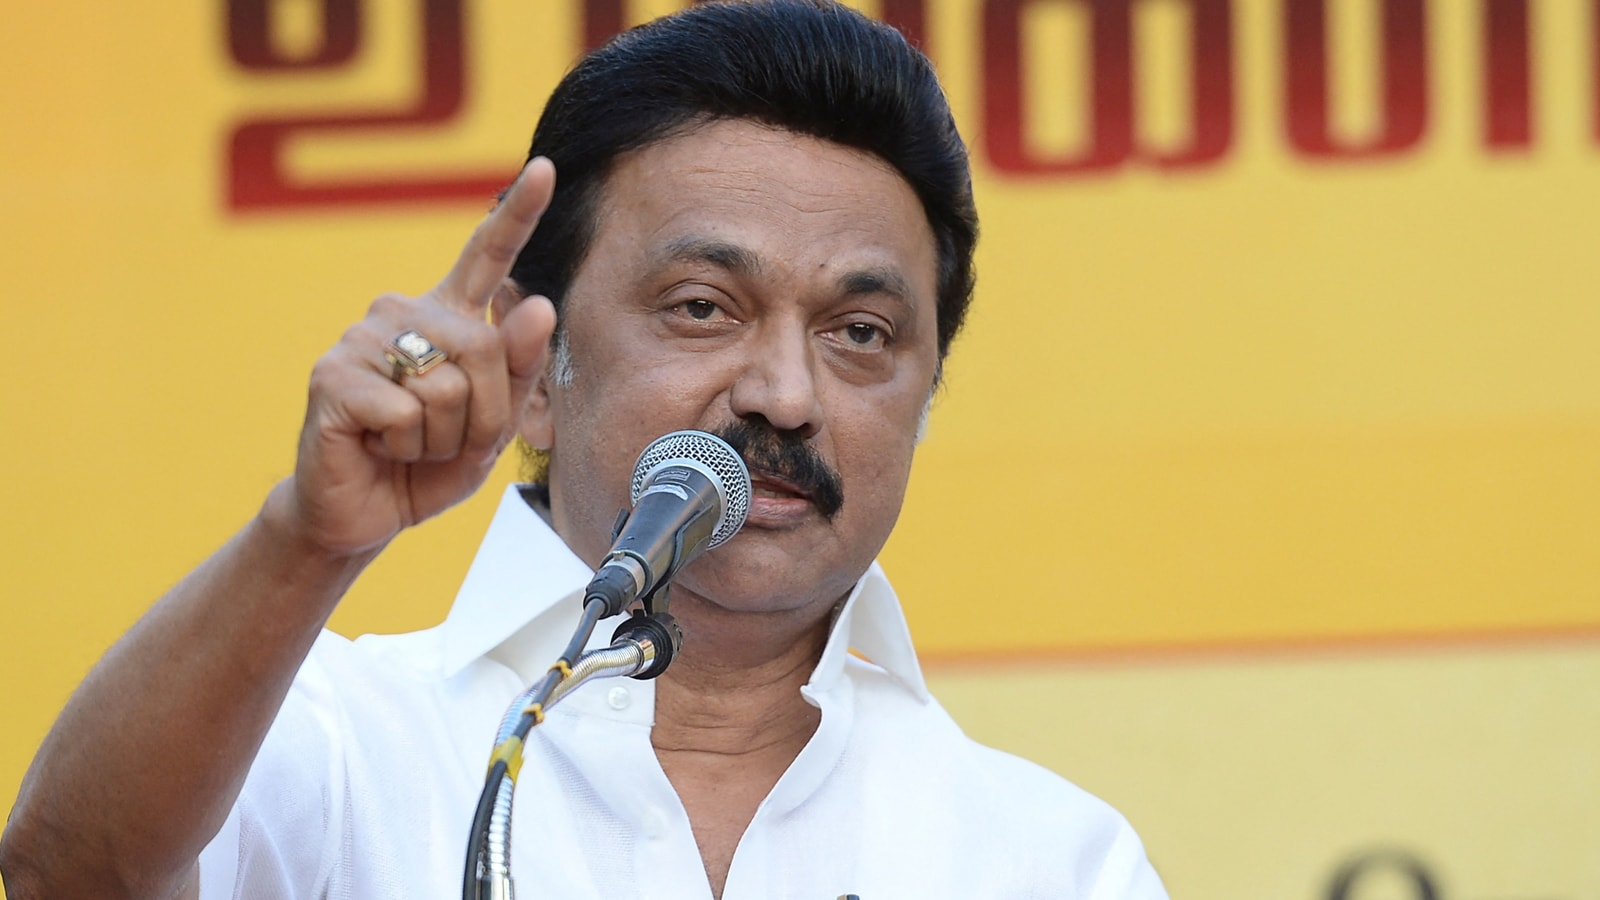 Governor Appoints Dmk Chief Stalin As Chief Minister Of Tamil Nadu |  Hindustan Times